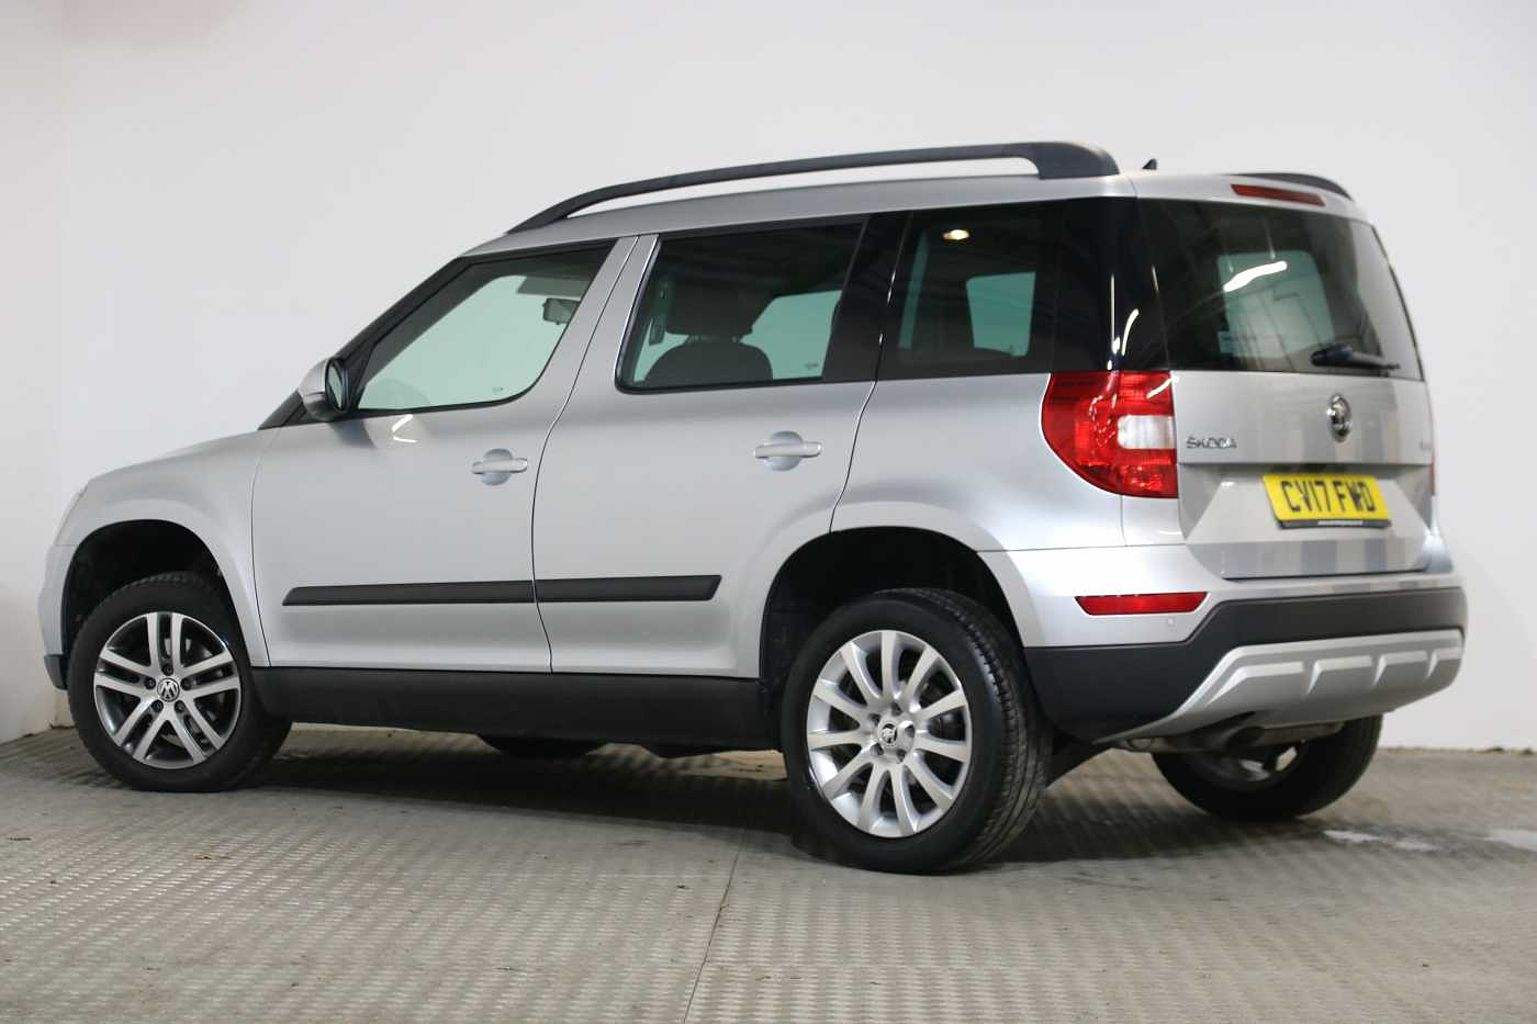 SKODA Yeti Outdoor SE 1.2 TSI 110 PS DSG